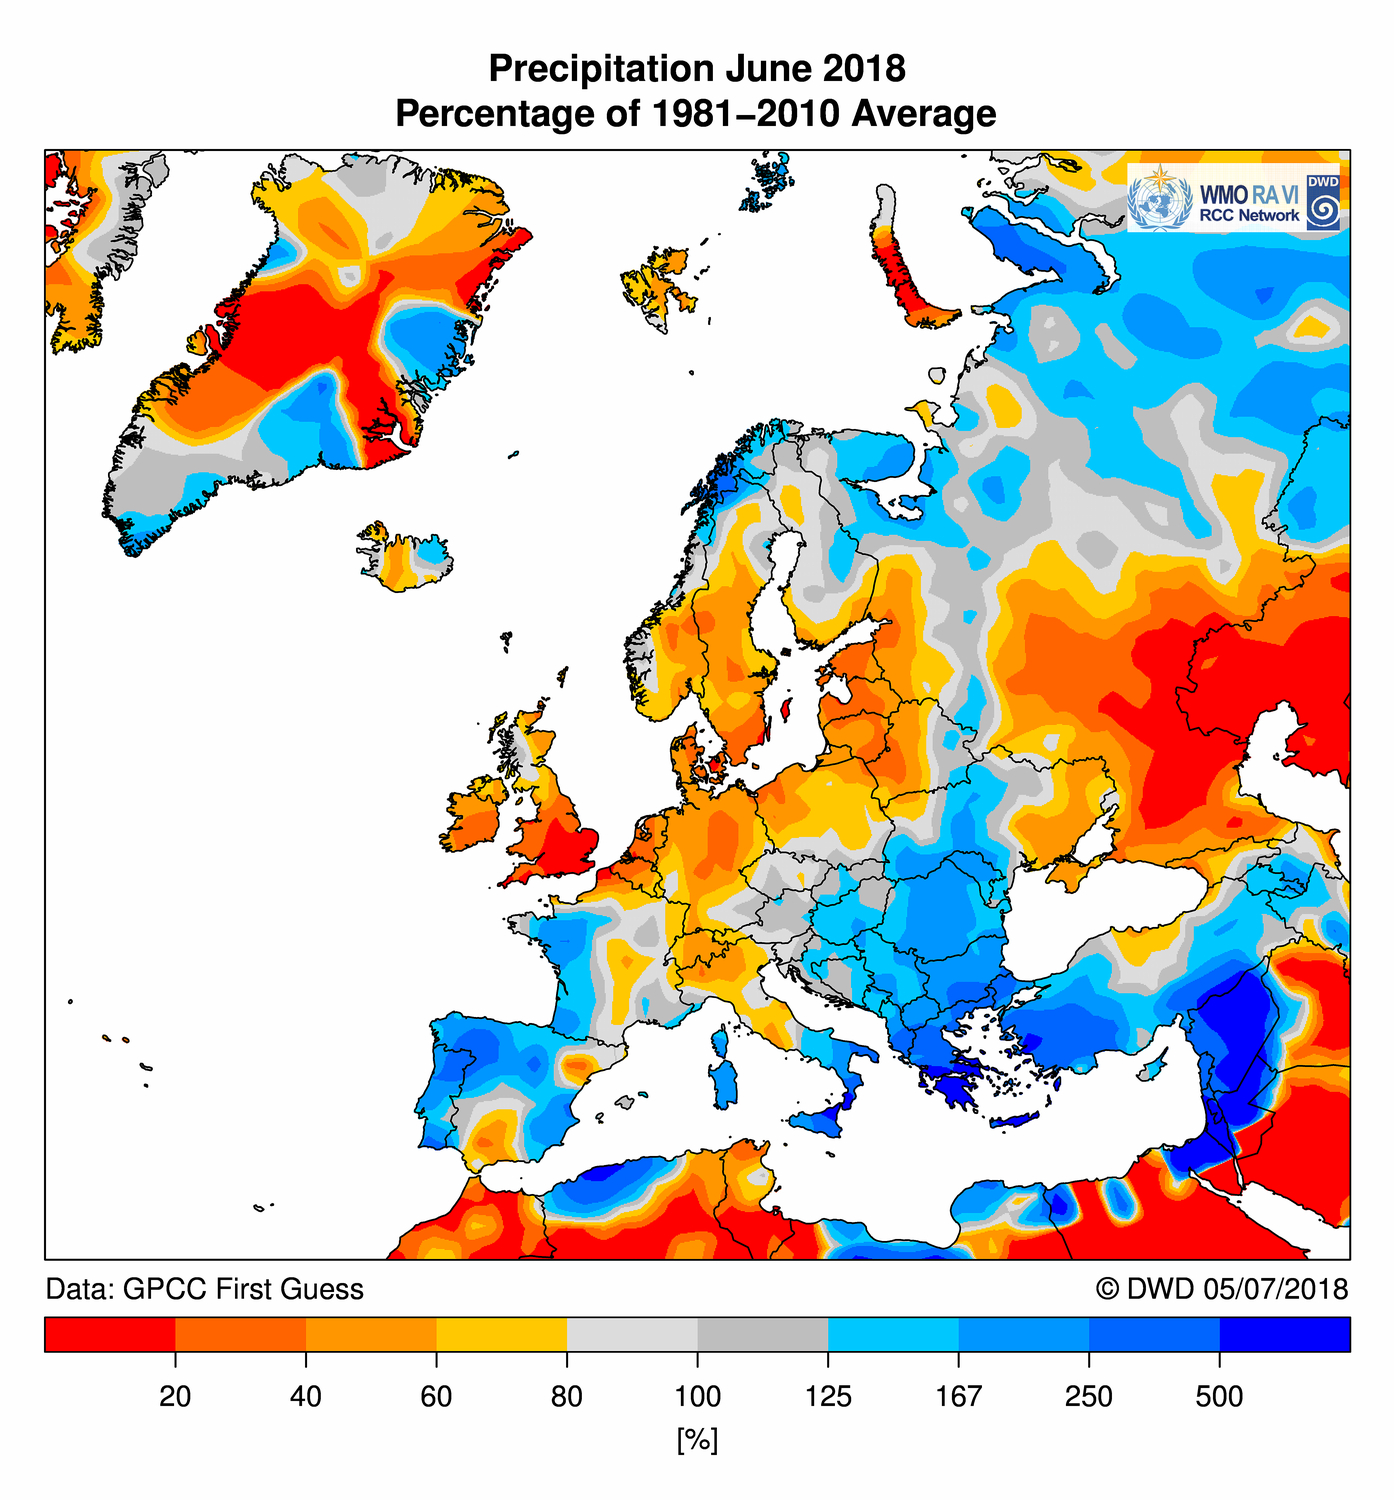 Precipitation June 2018